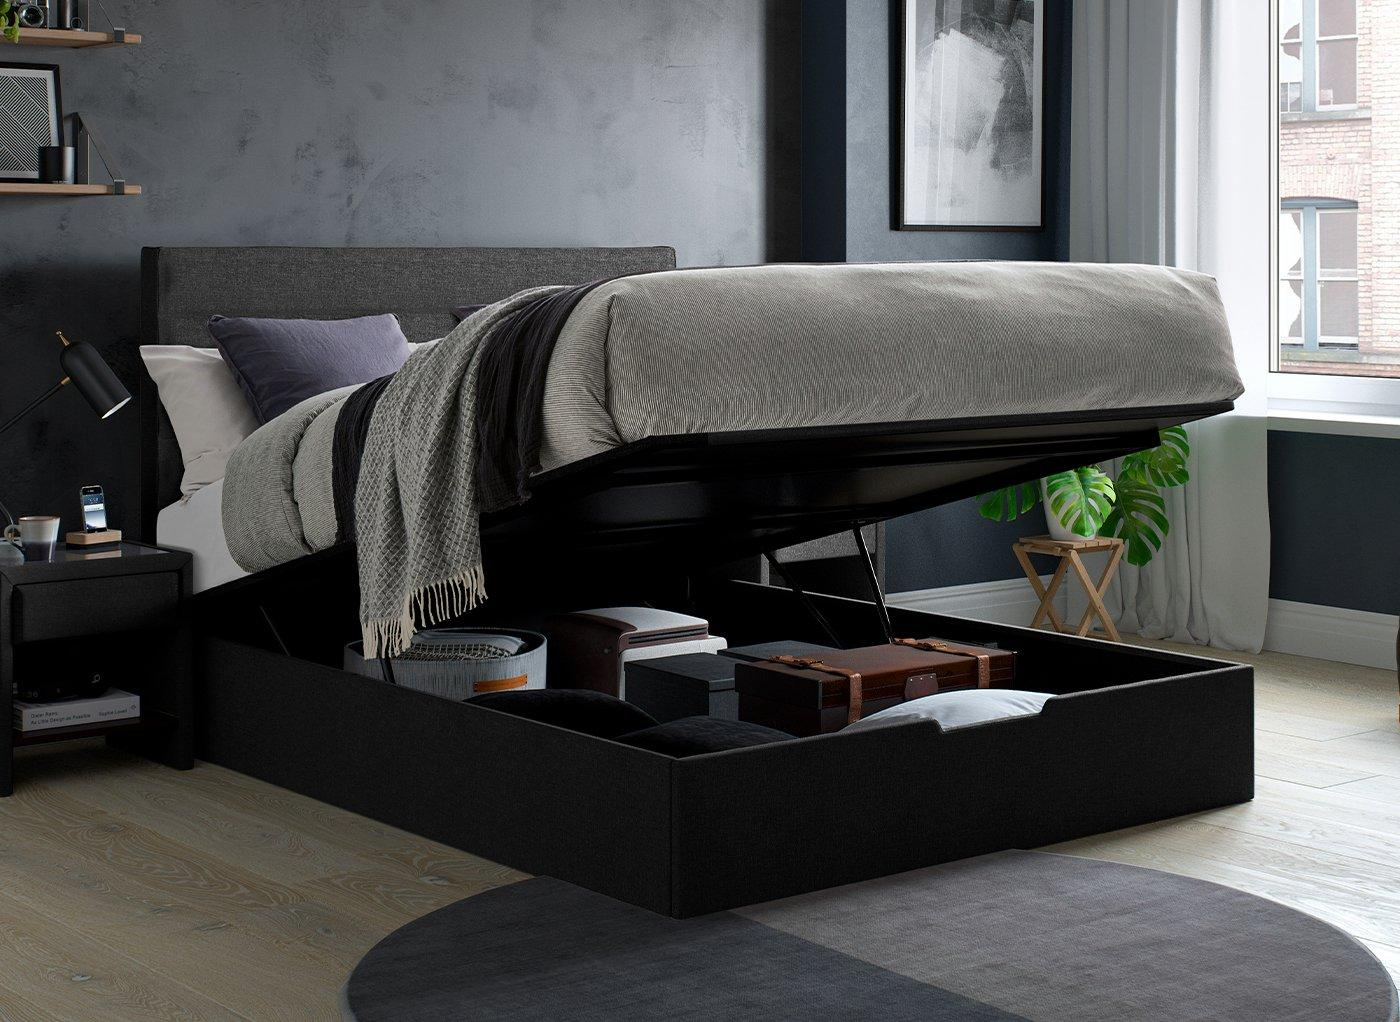 sutton-upholstered-ottoman-bed-frame